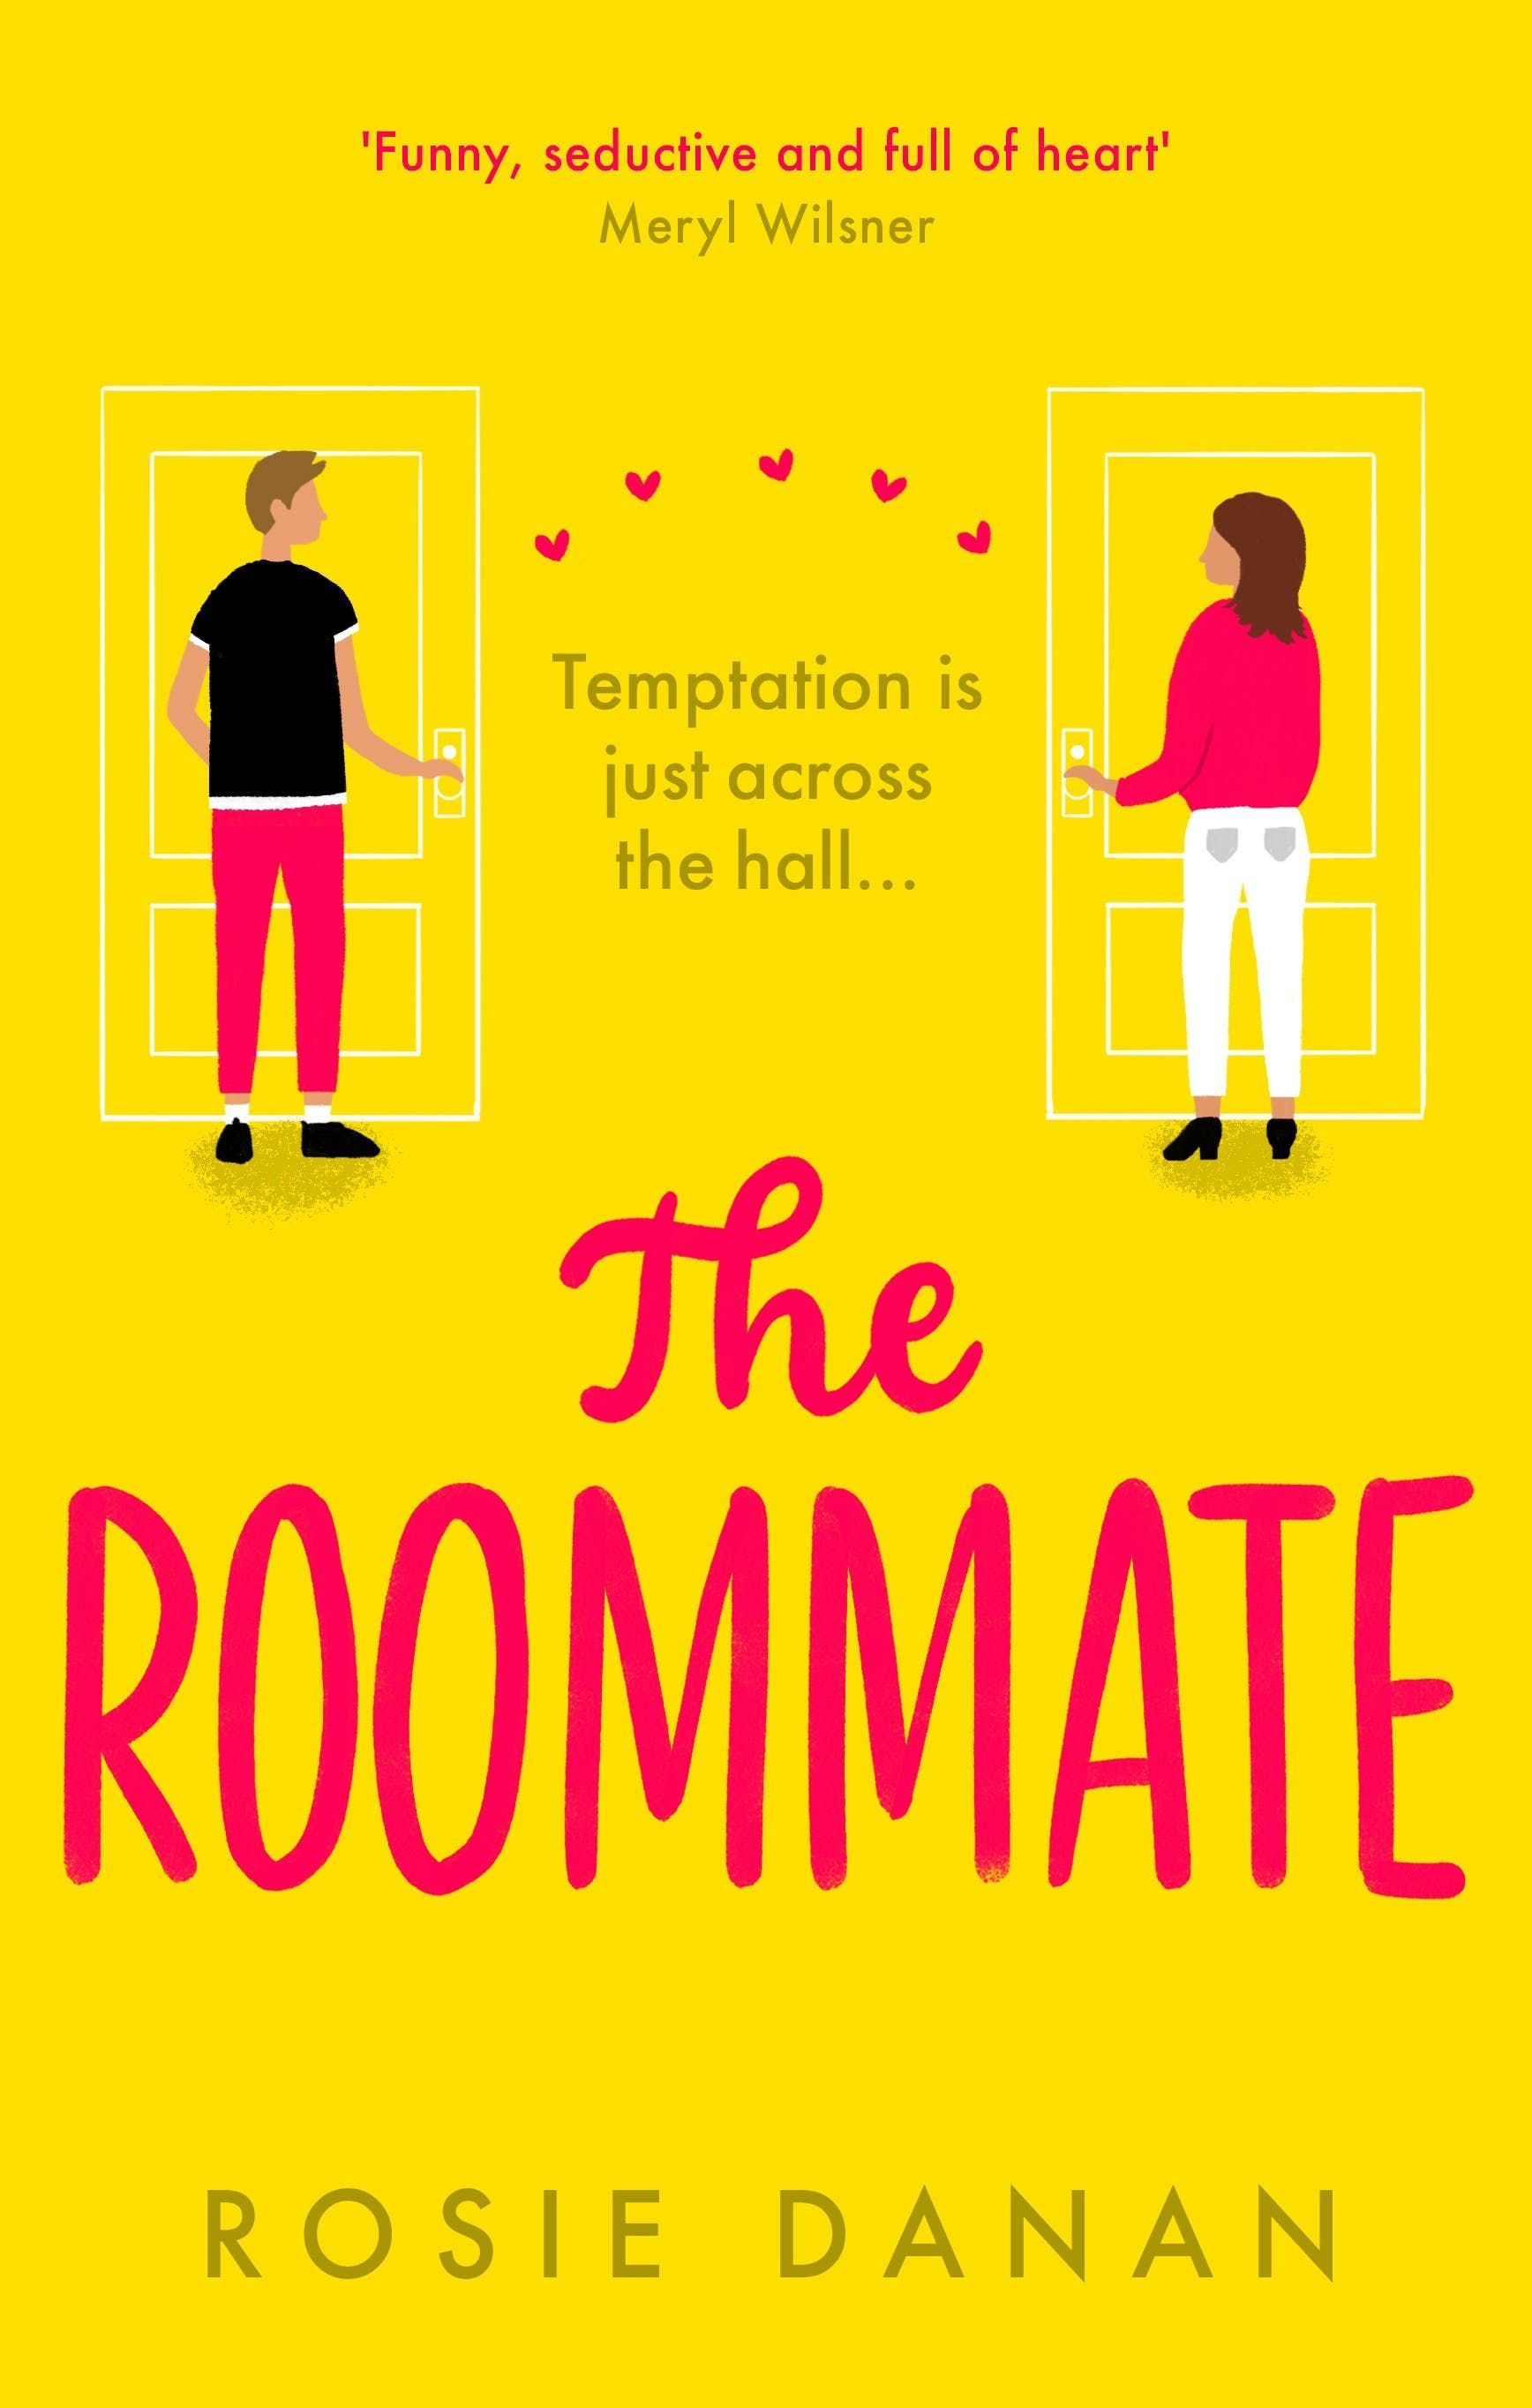 [PDF] The Roommate by Rosie Danan   Reading romance